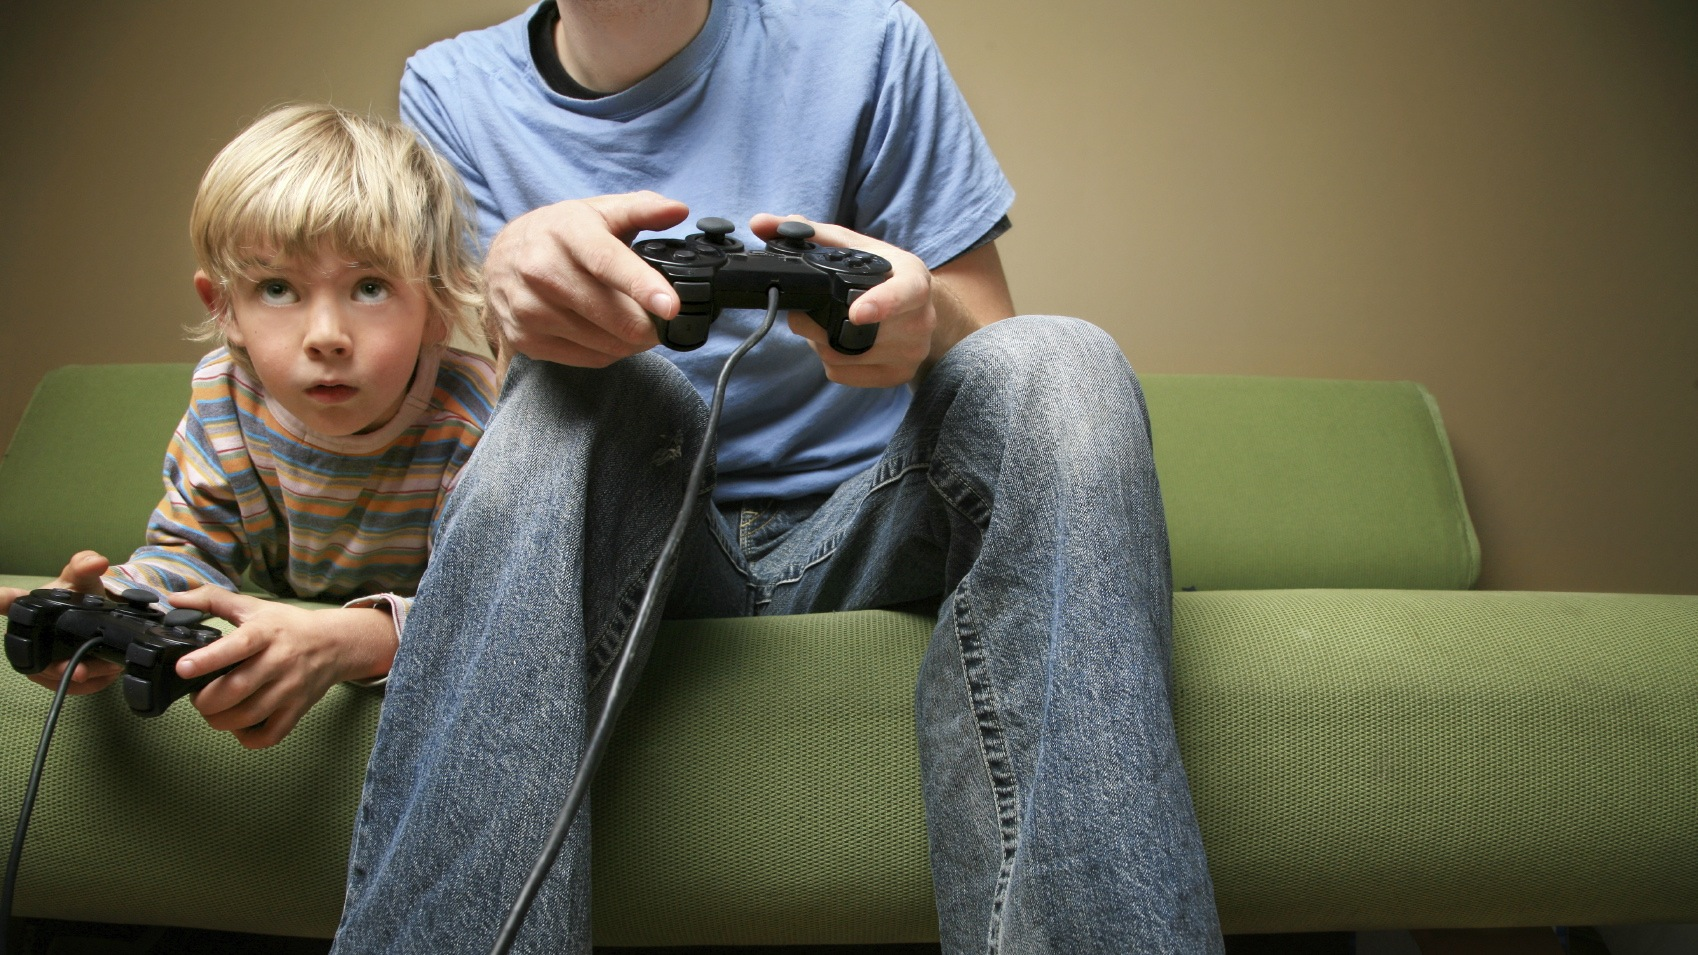 5 Video Games That your Kids Should Play